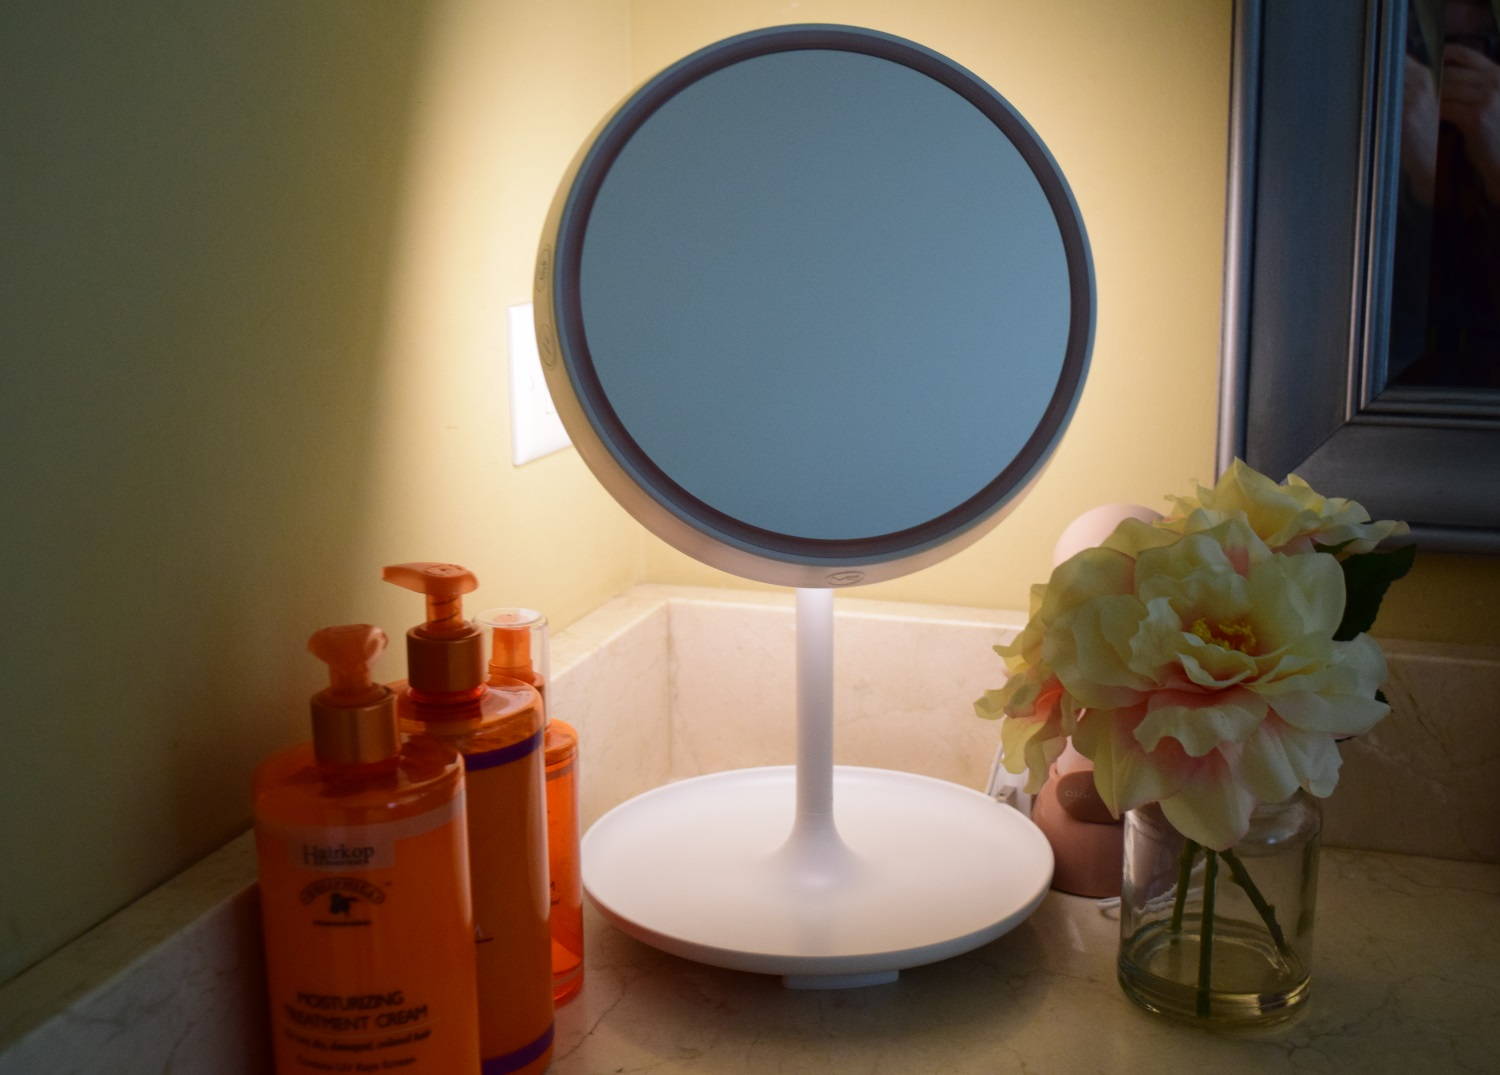 MelodySusie Narcissus Makeup Mirror and Lamp | Beauty and Fashion Tech for Ring Light Makeup Mirror  55jwn